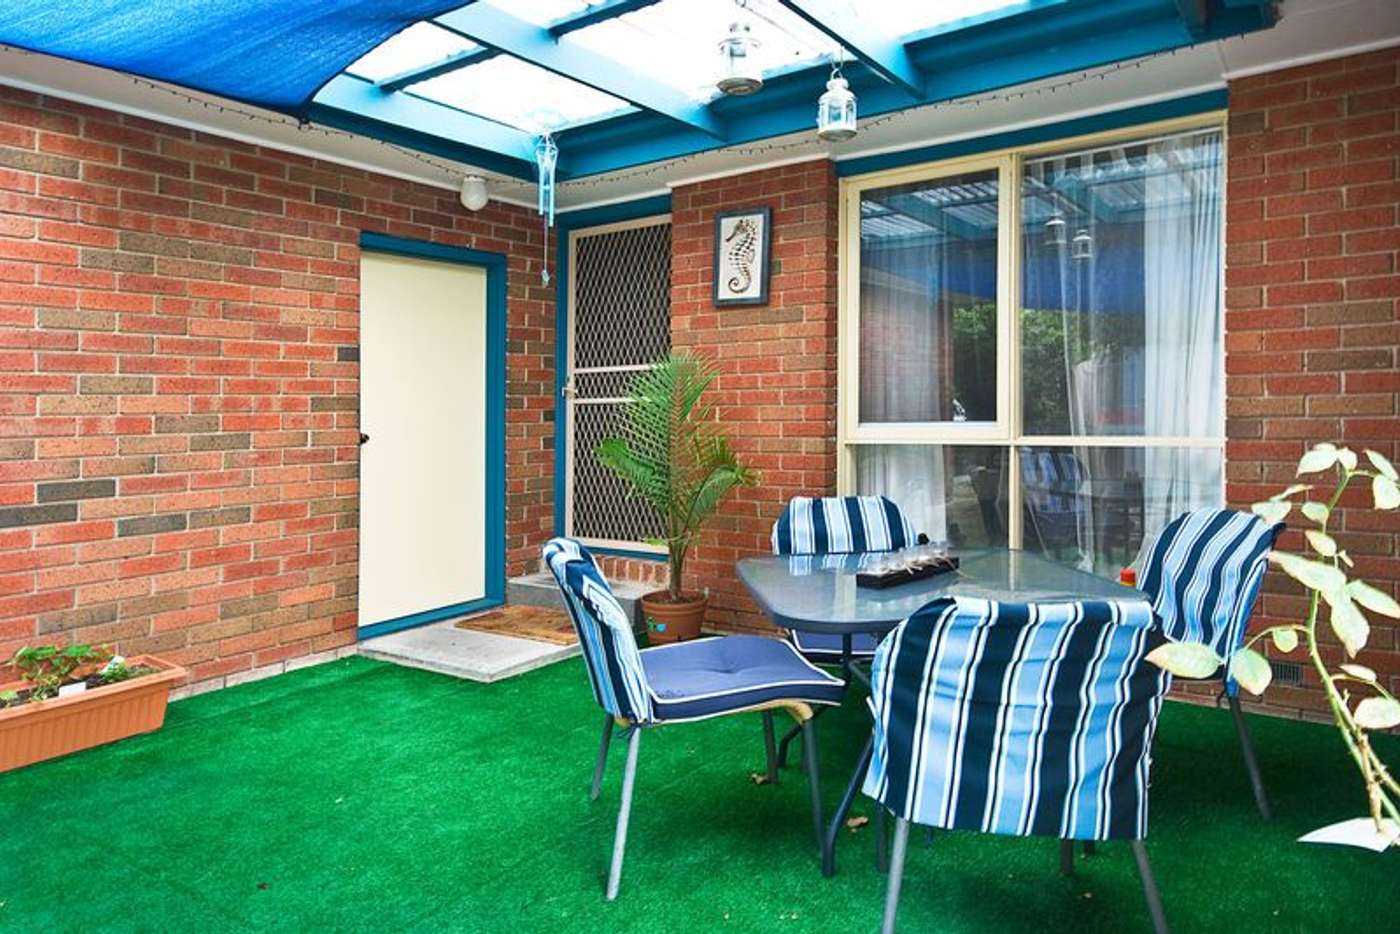 Main view of Homely unit listing, 2/73 Hillside Street, Springvale VIC 3171